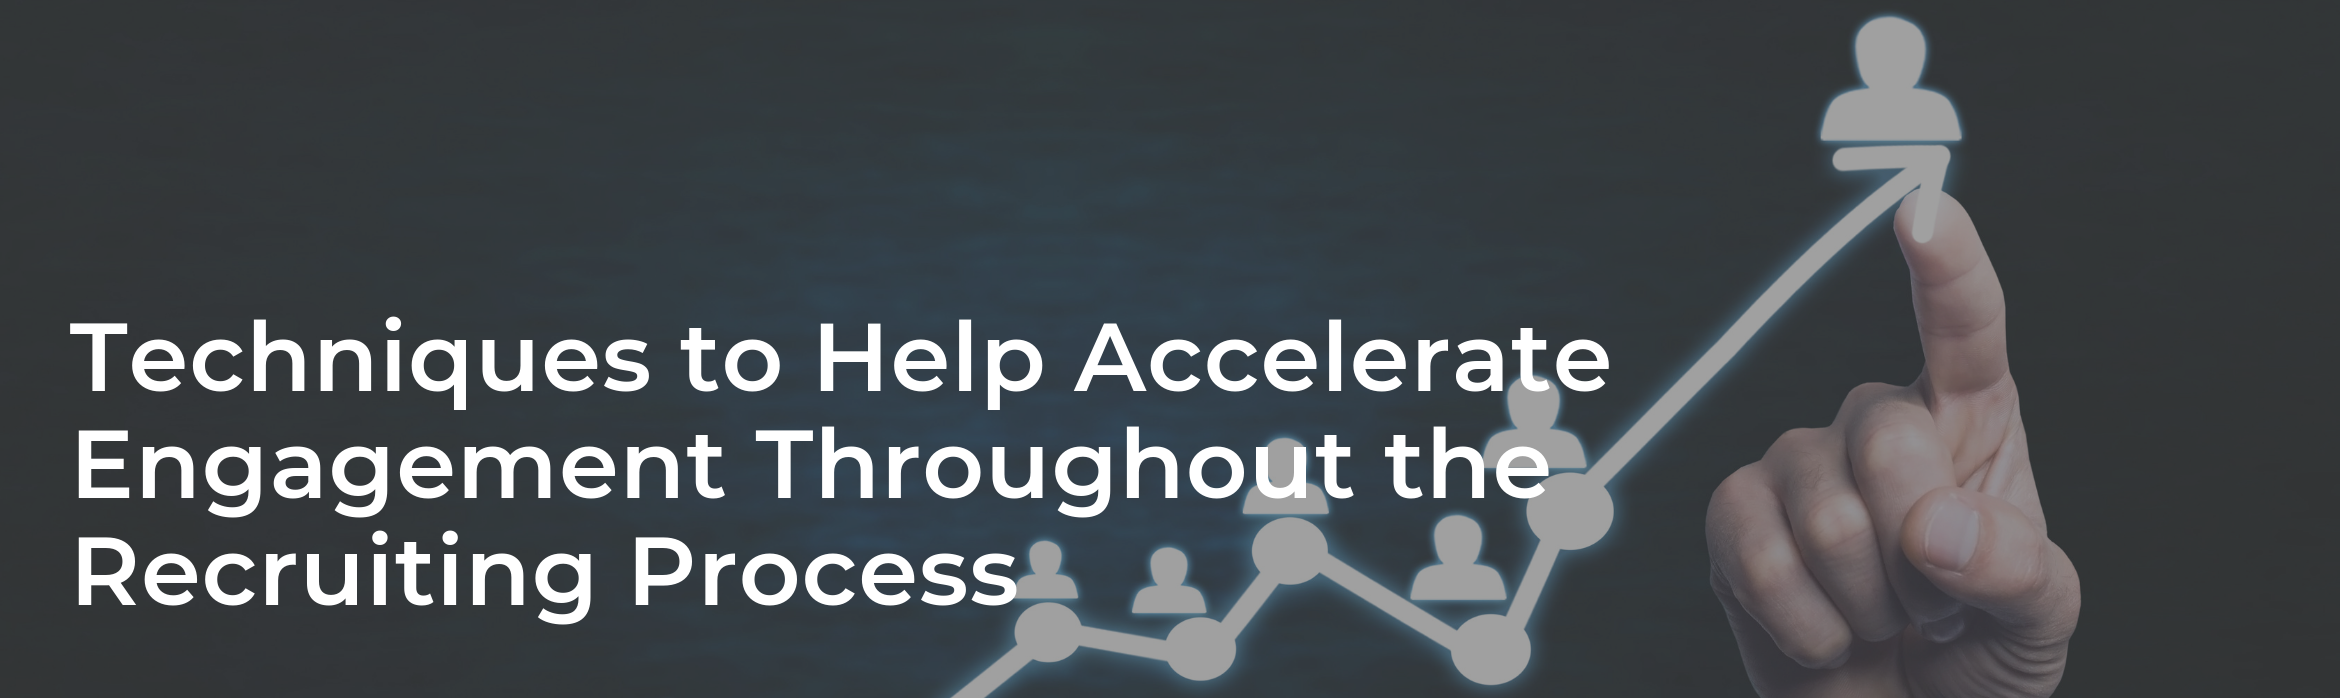 Techniques to Help Accelerate Engagement Throughout the Recruiting Process